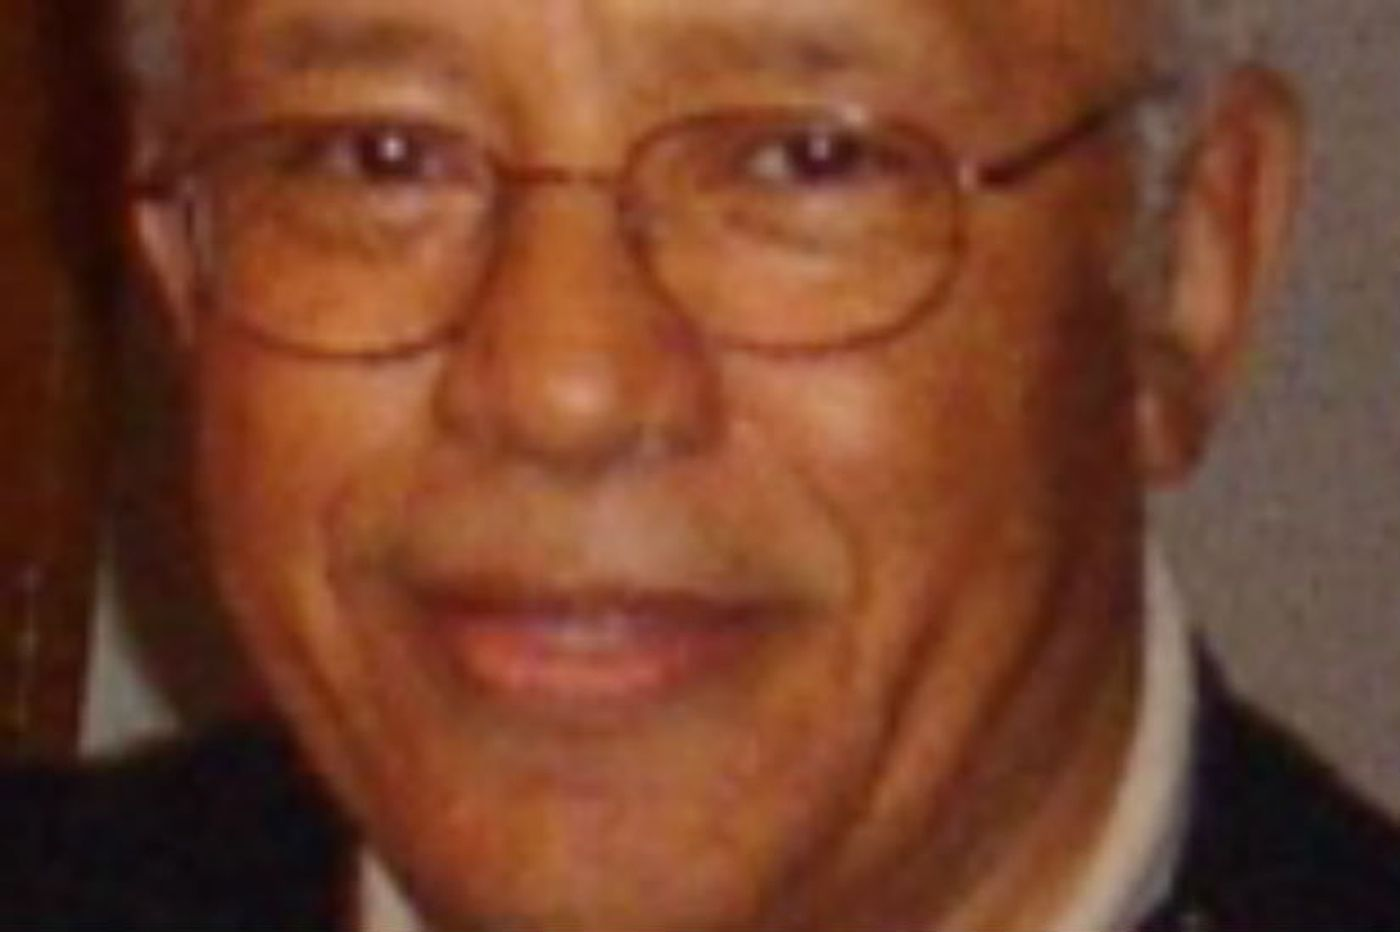 Aubrey Bright Jones Jr., 83, engineer who oversaw Enon Tabernacle building project